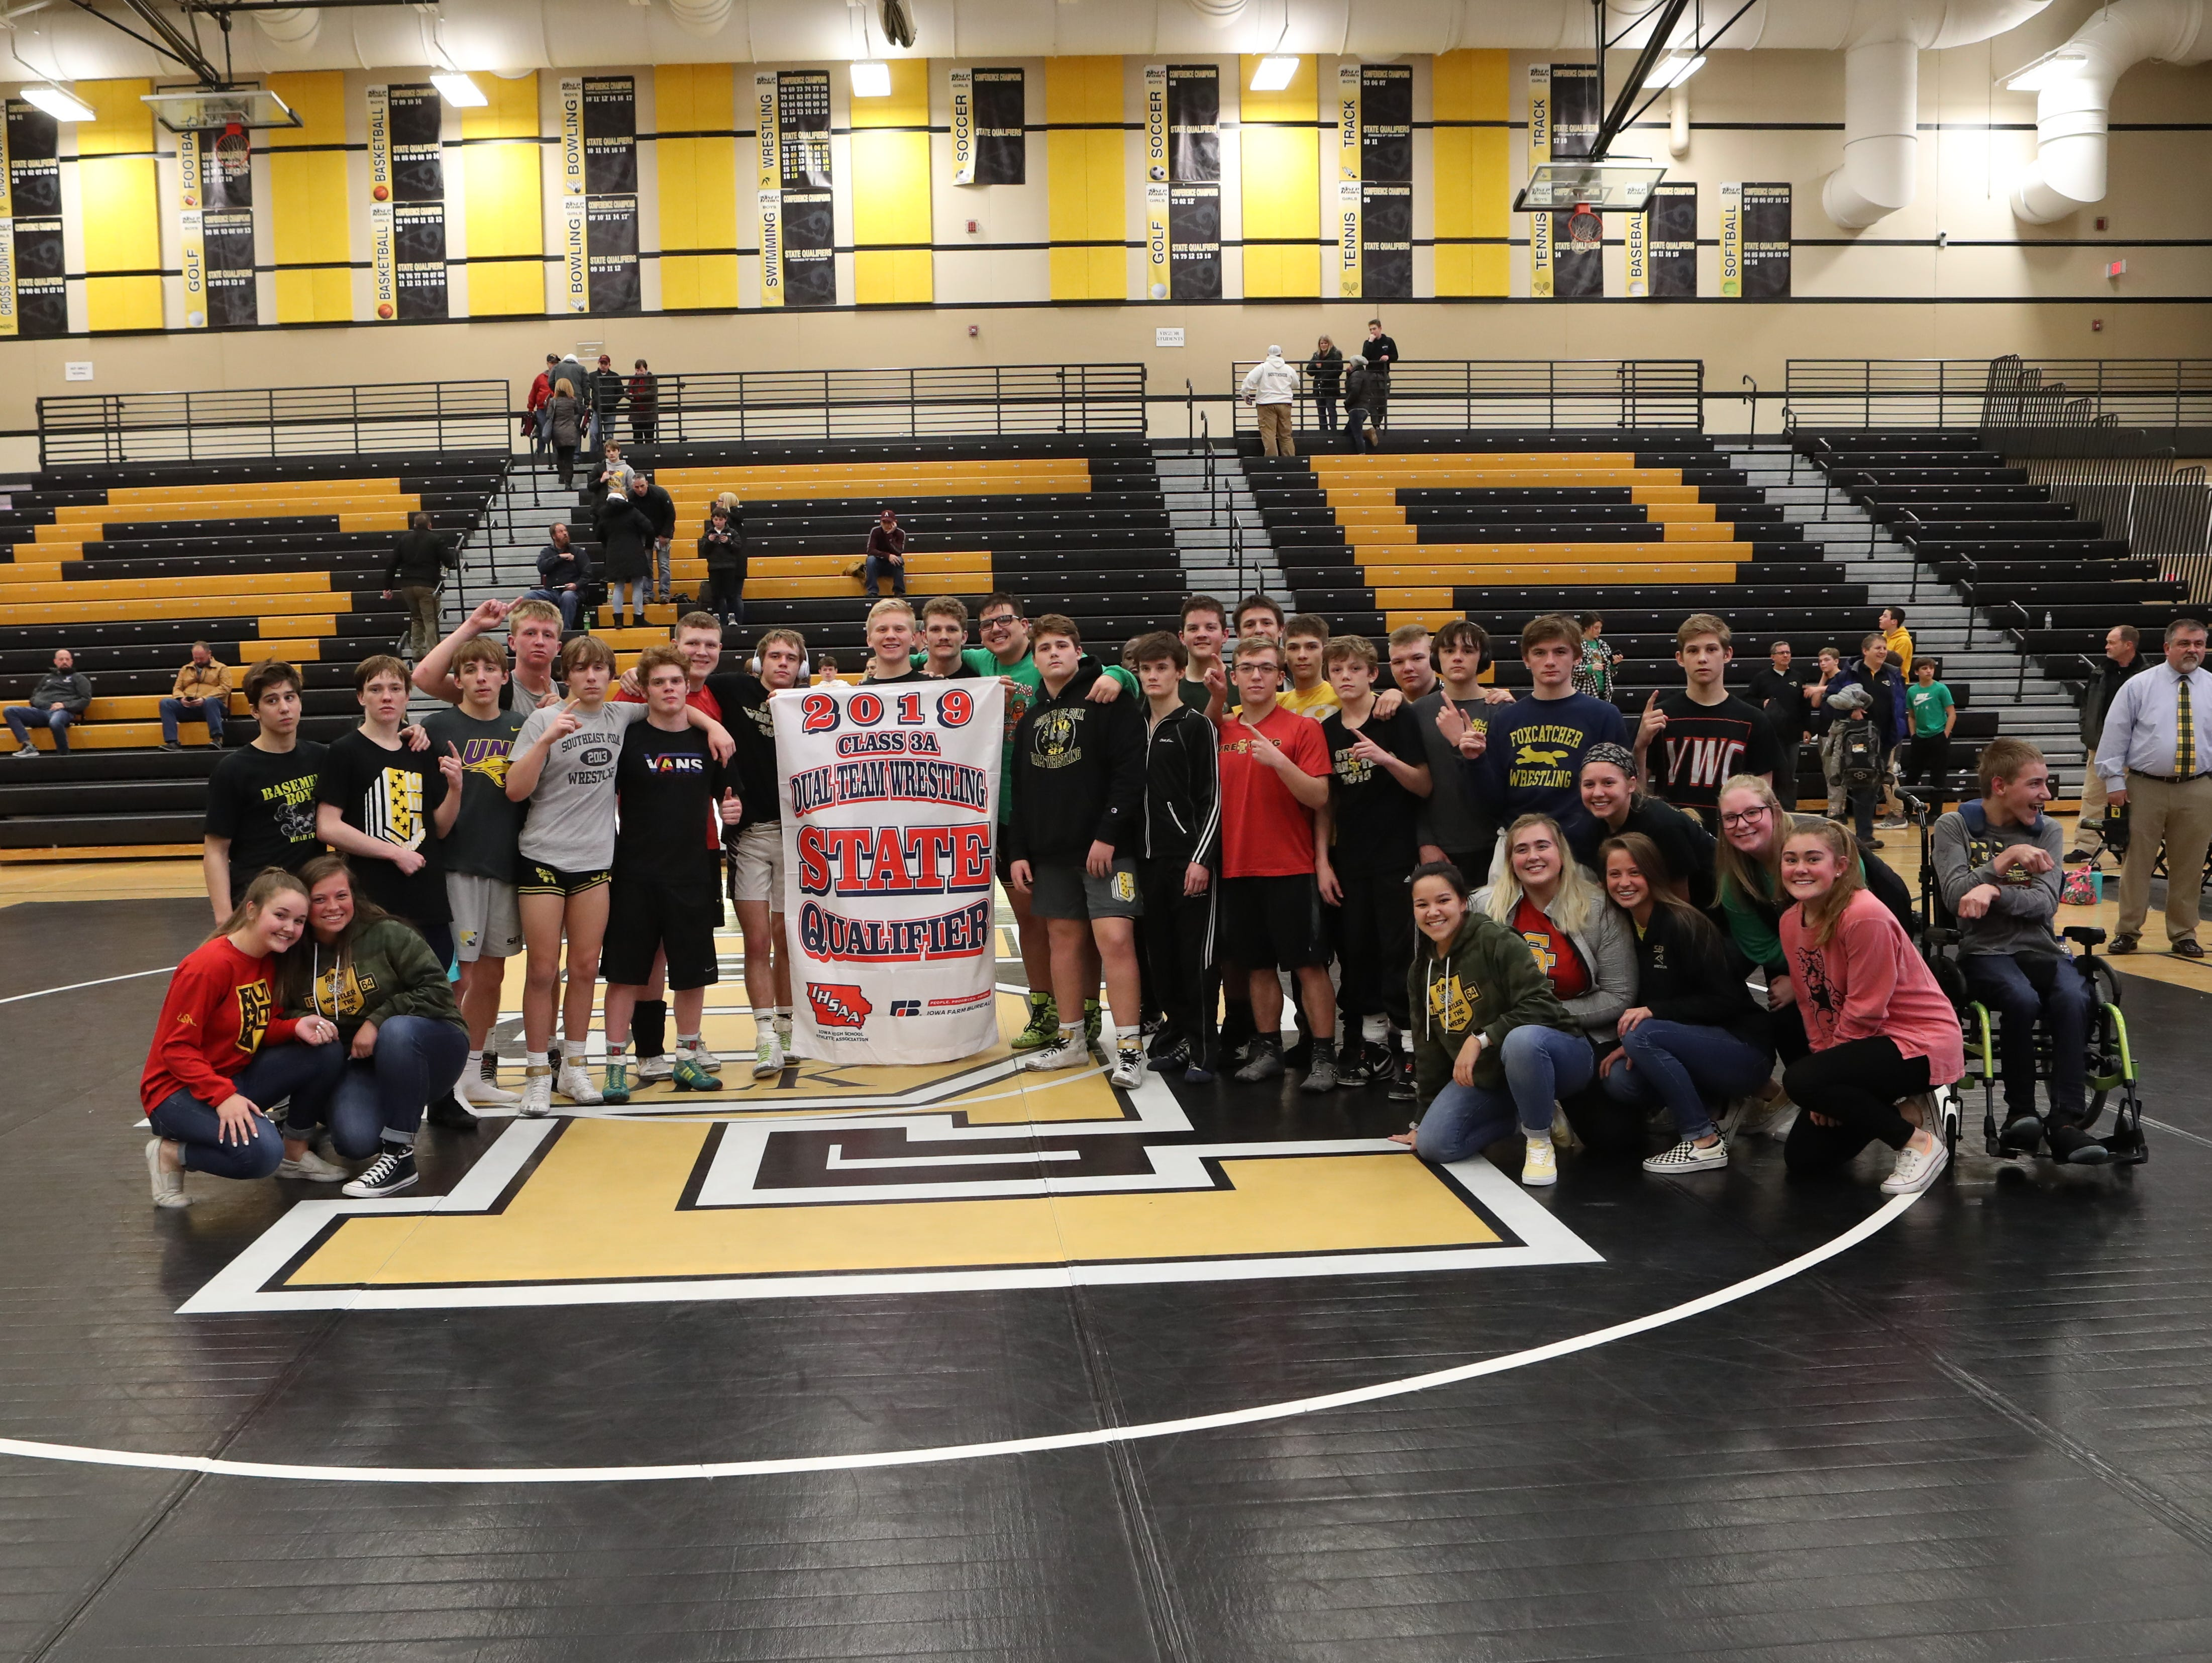 Southeast Polk wrestlers hold their state qualifier banner after beating Ankeny   57-17 in a Class 3A regional dual Feb. 6 at Southeast Polk.